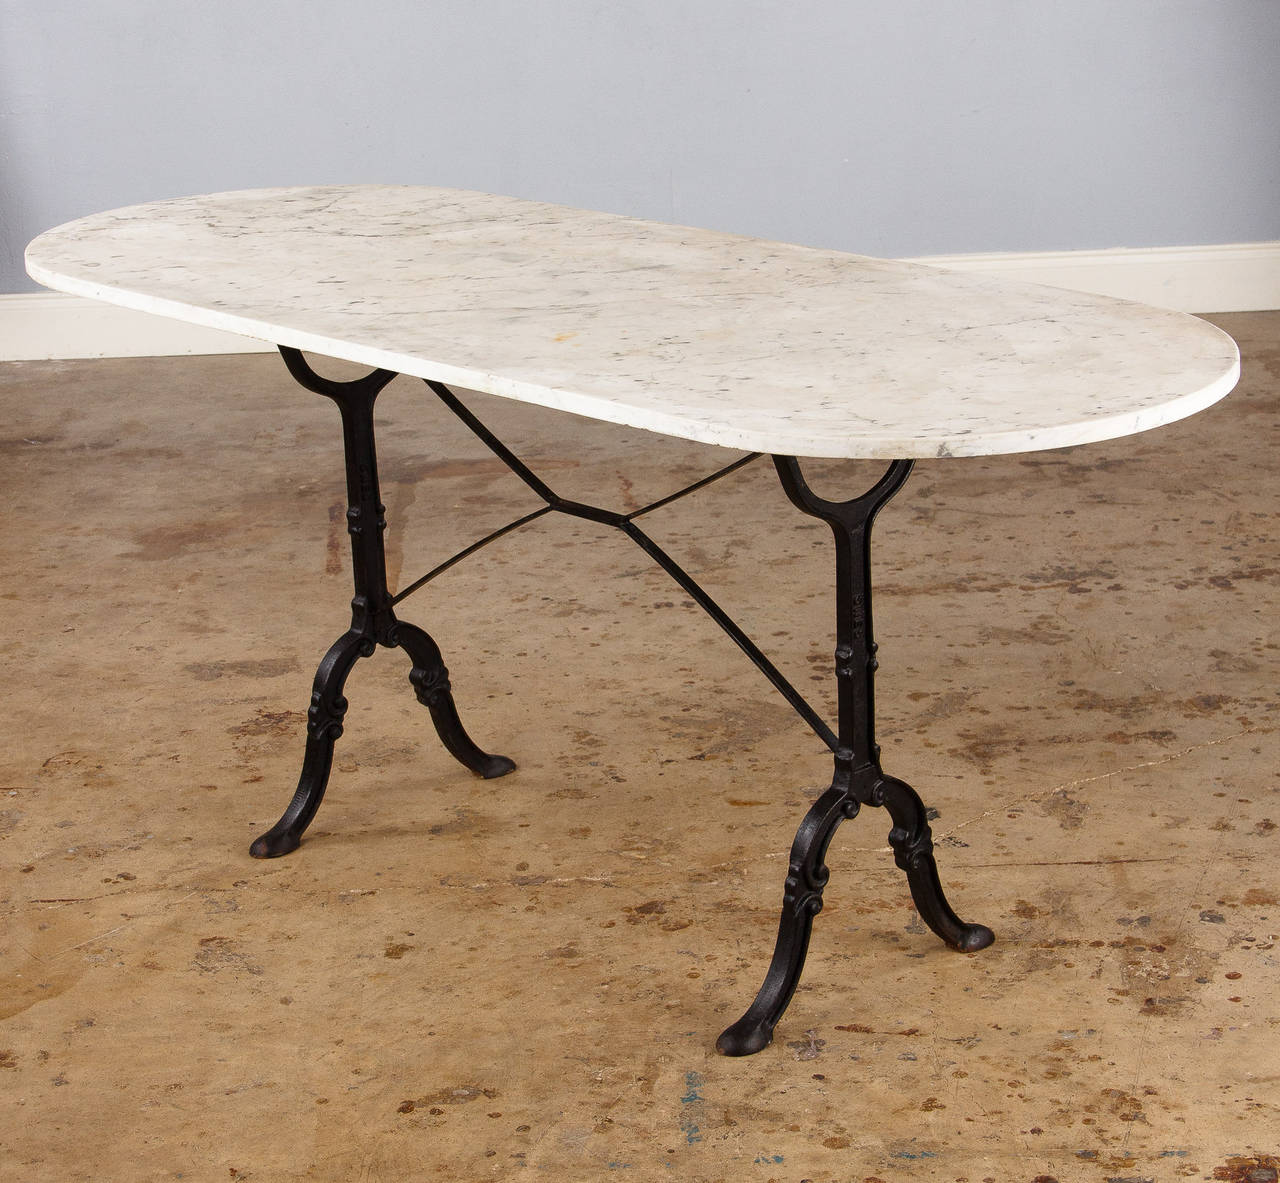 Charmant White Marble Bistro Table With A Pair Of Black Wrought Iron Legs